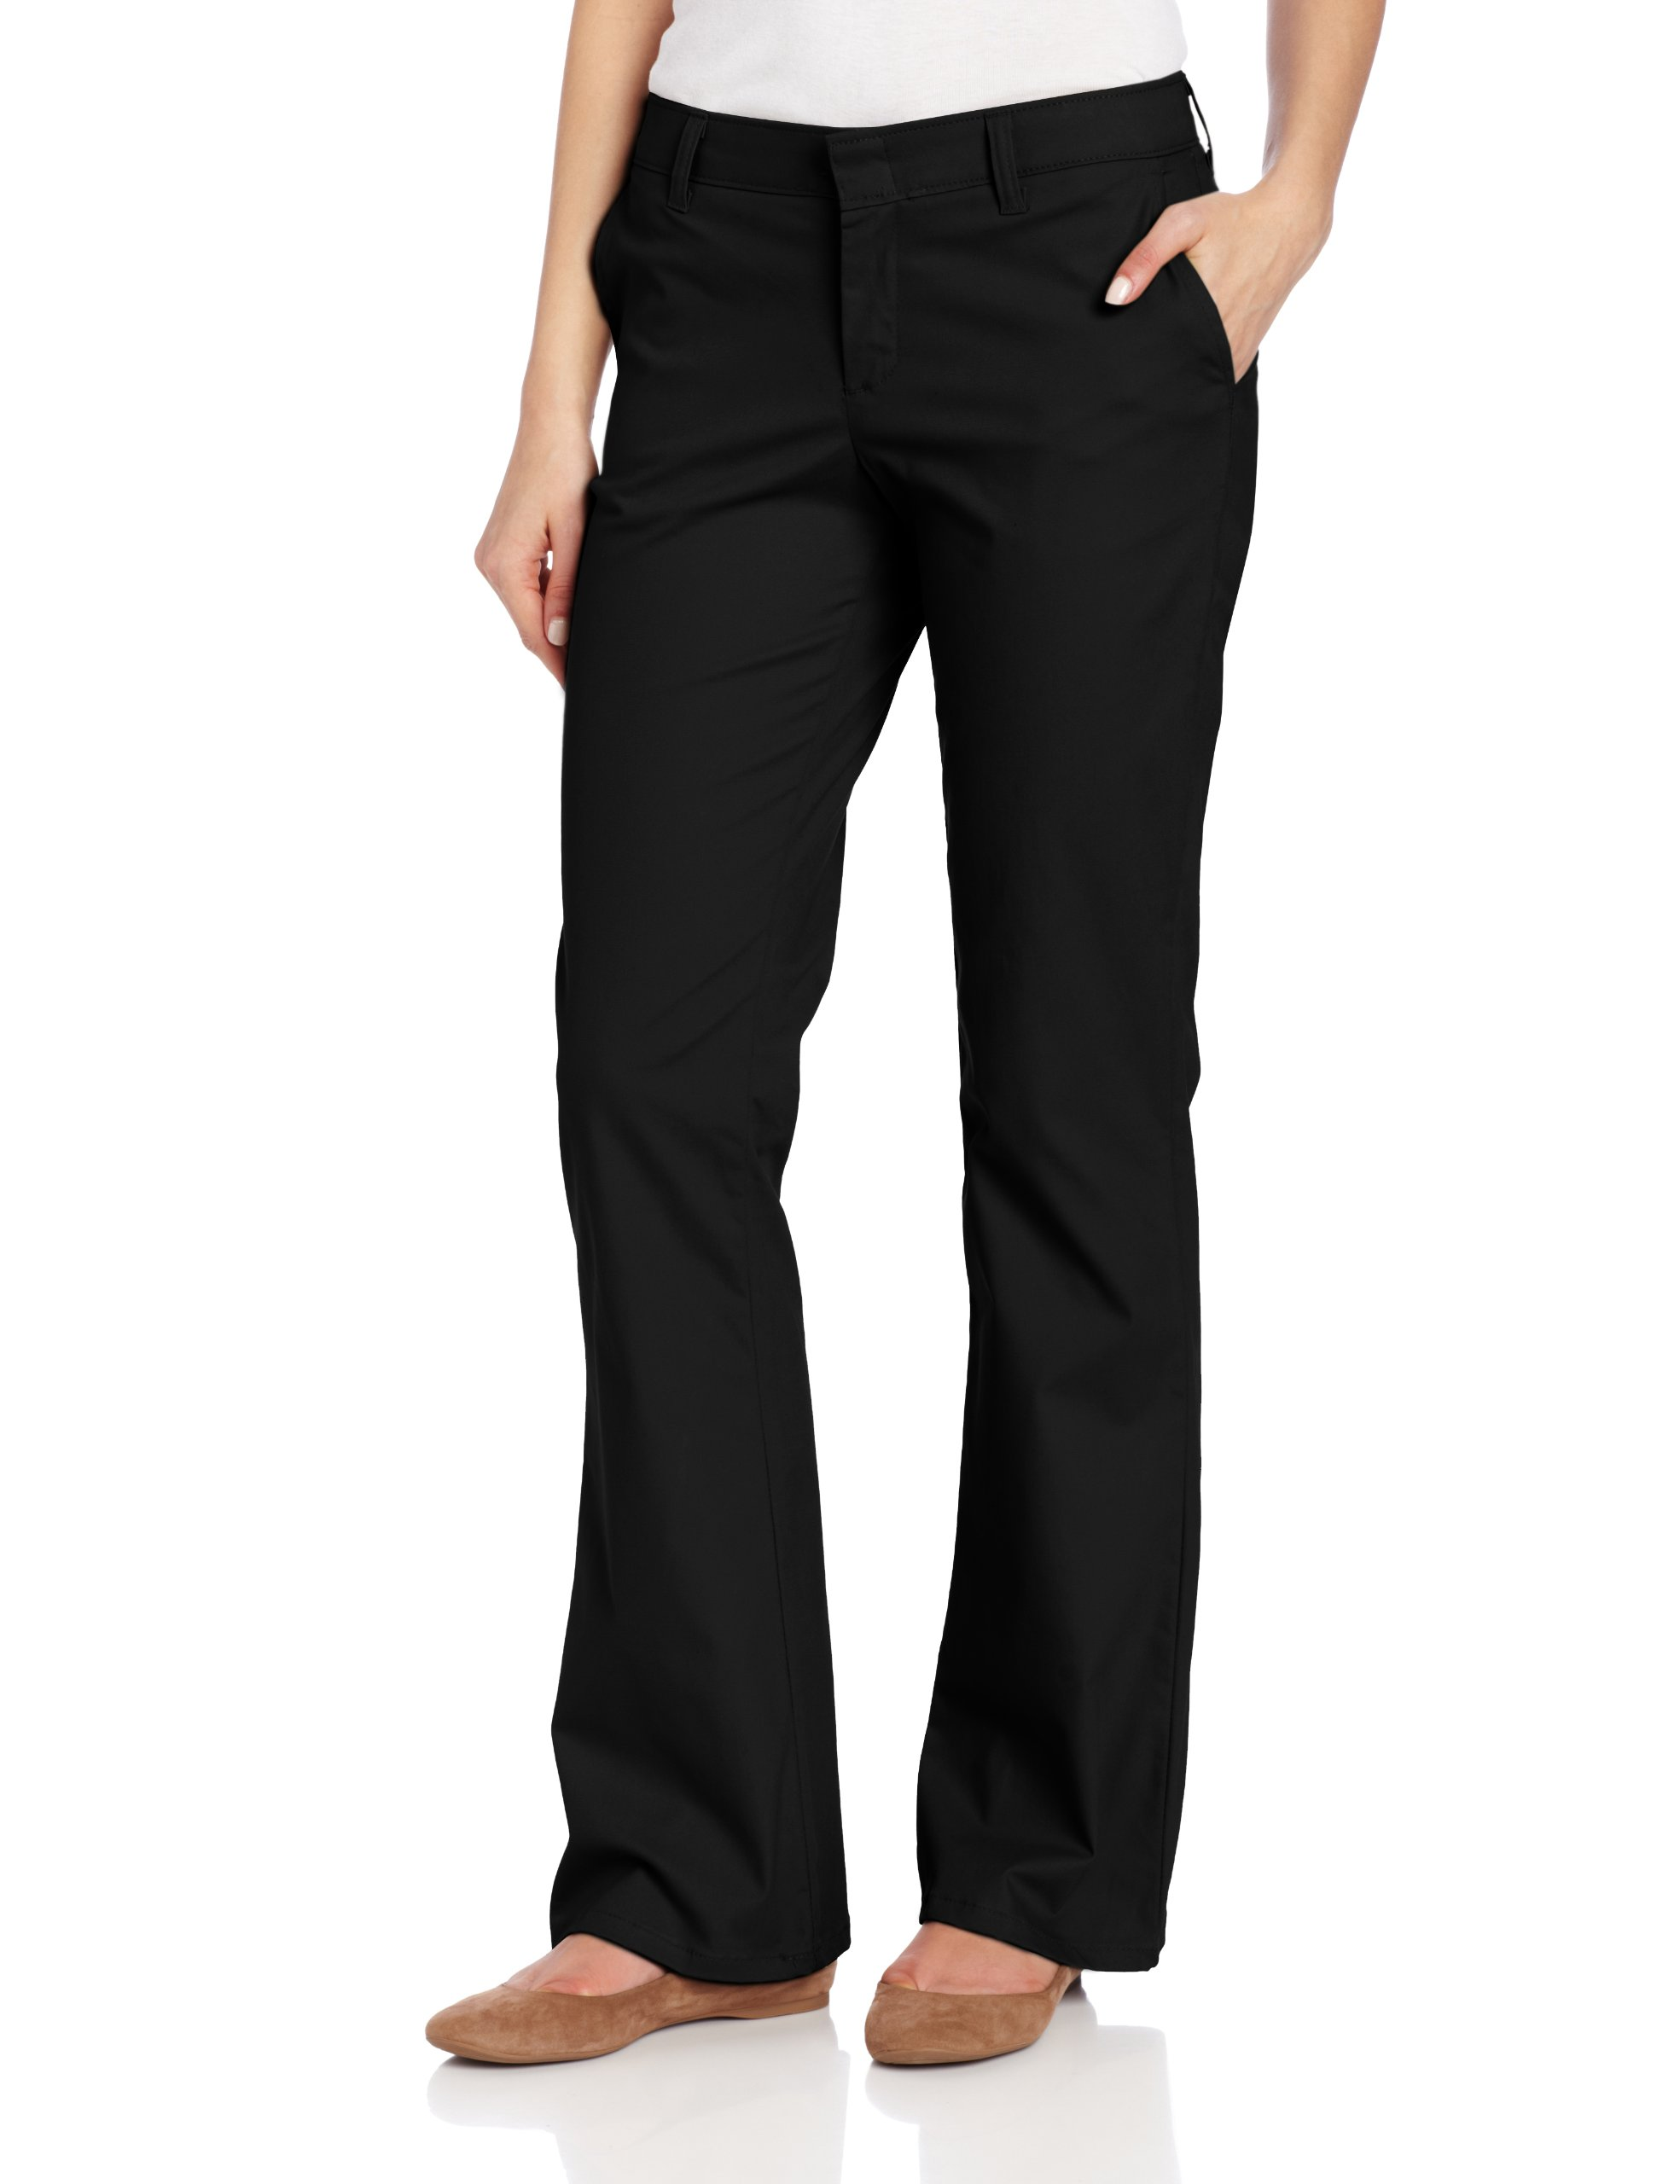 Dickies Women's Slim Fit Boot Cut Stretch Twill Pant, Black, 6 Short by Dickies (Image #1)